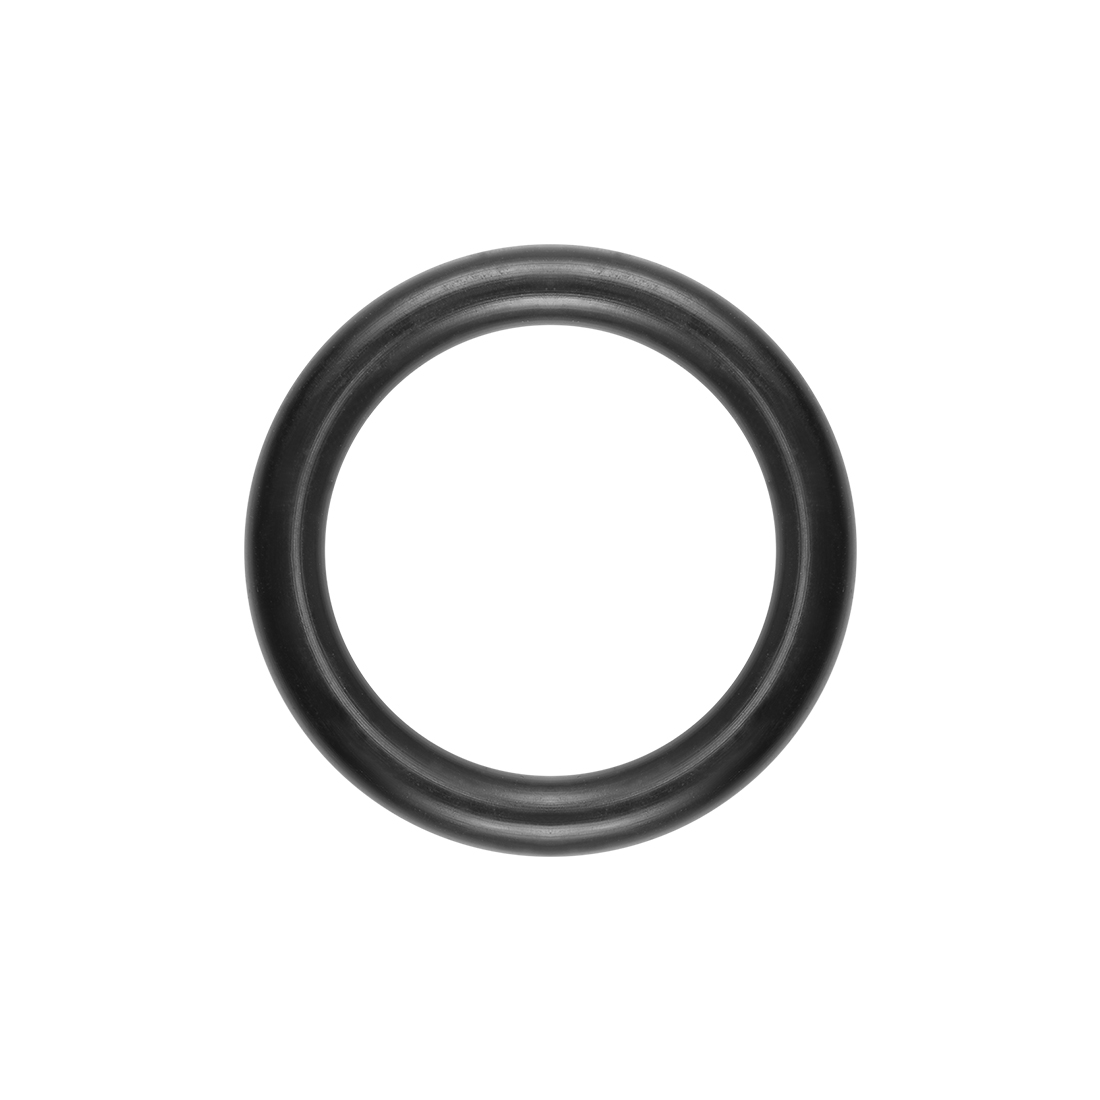 O-Rings Nitrile Rubber 21mm x 29mm x 4mm Round Seal Gasket